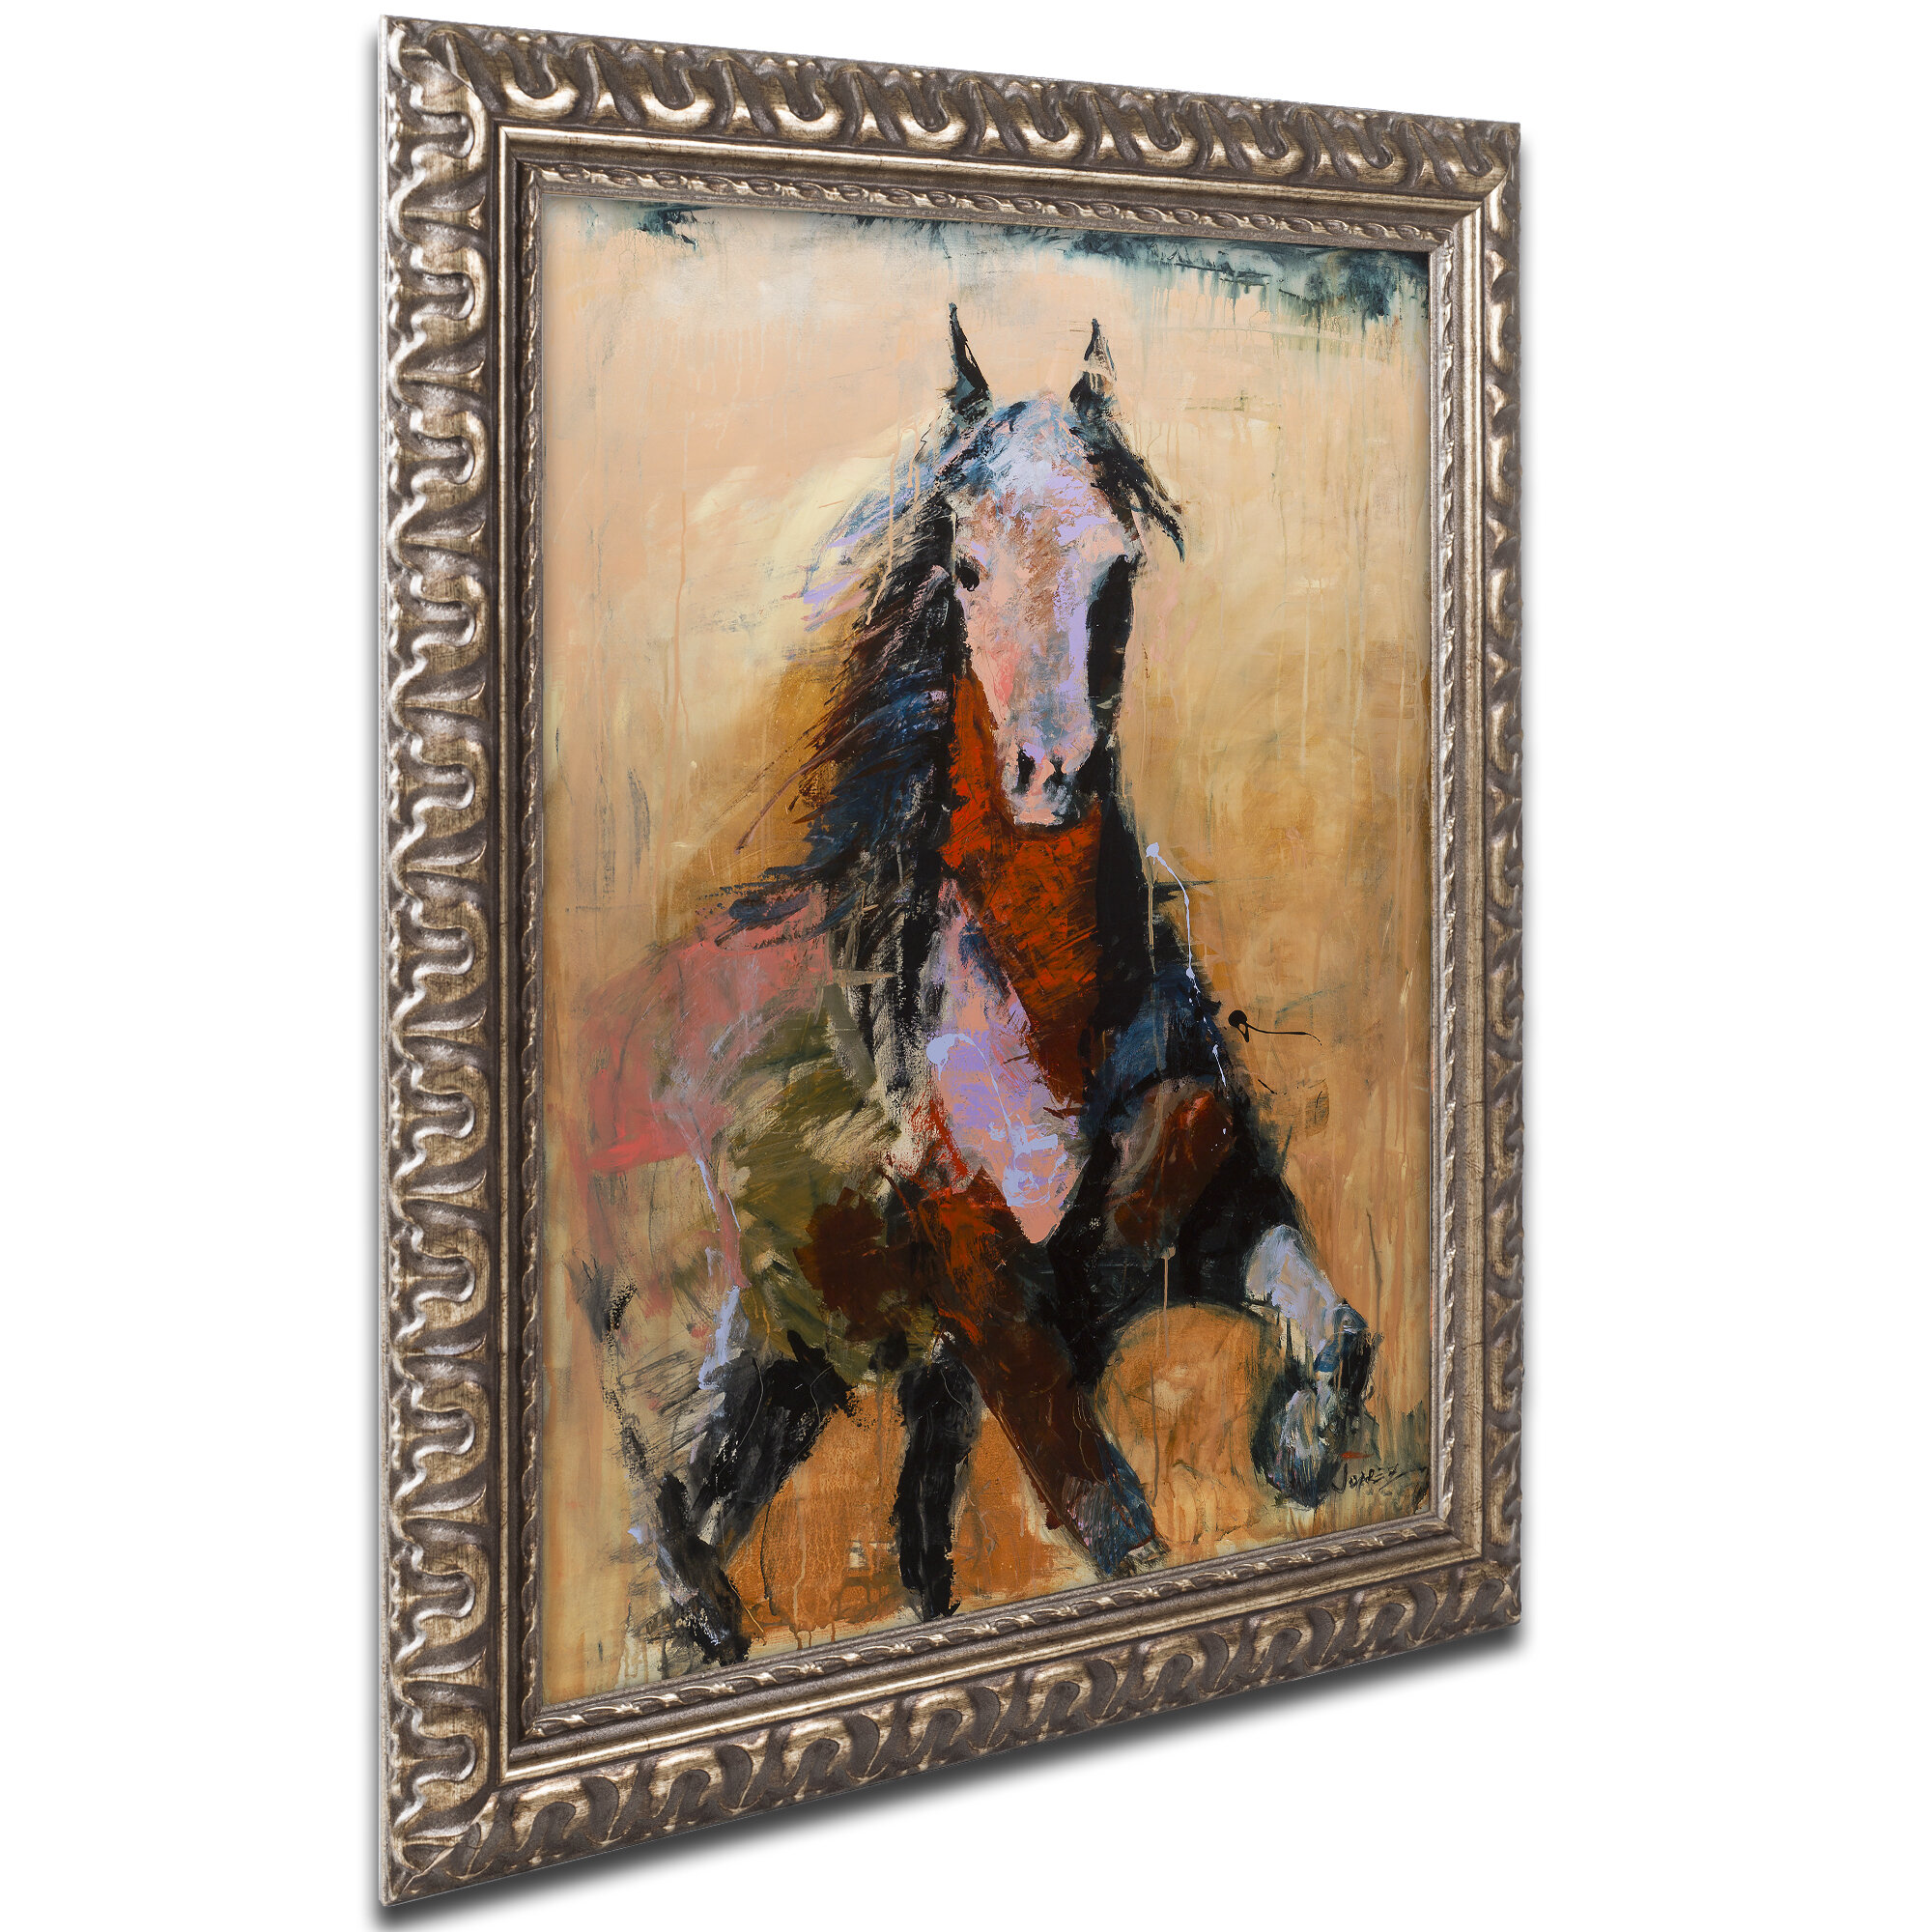 Trademark Art Golden Horse Framed Graphic Art On Canvas